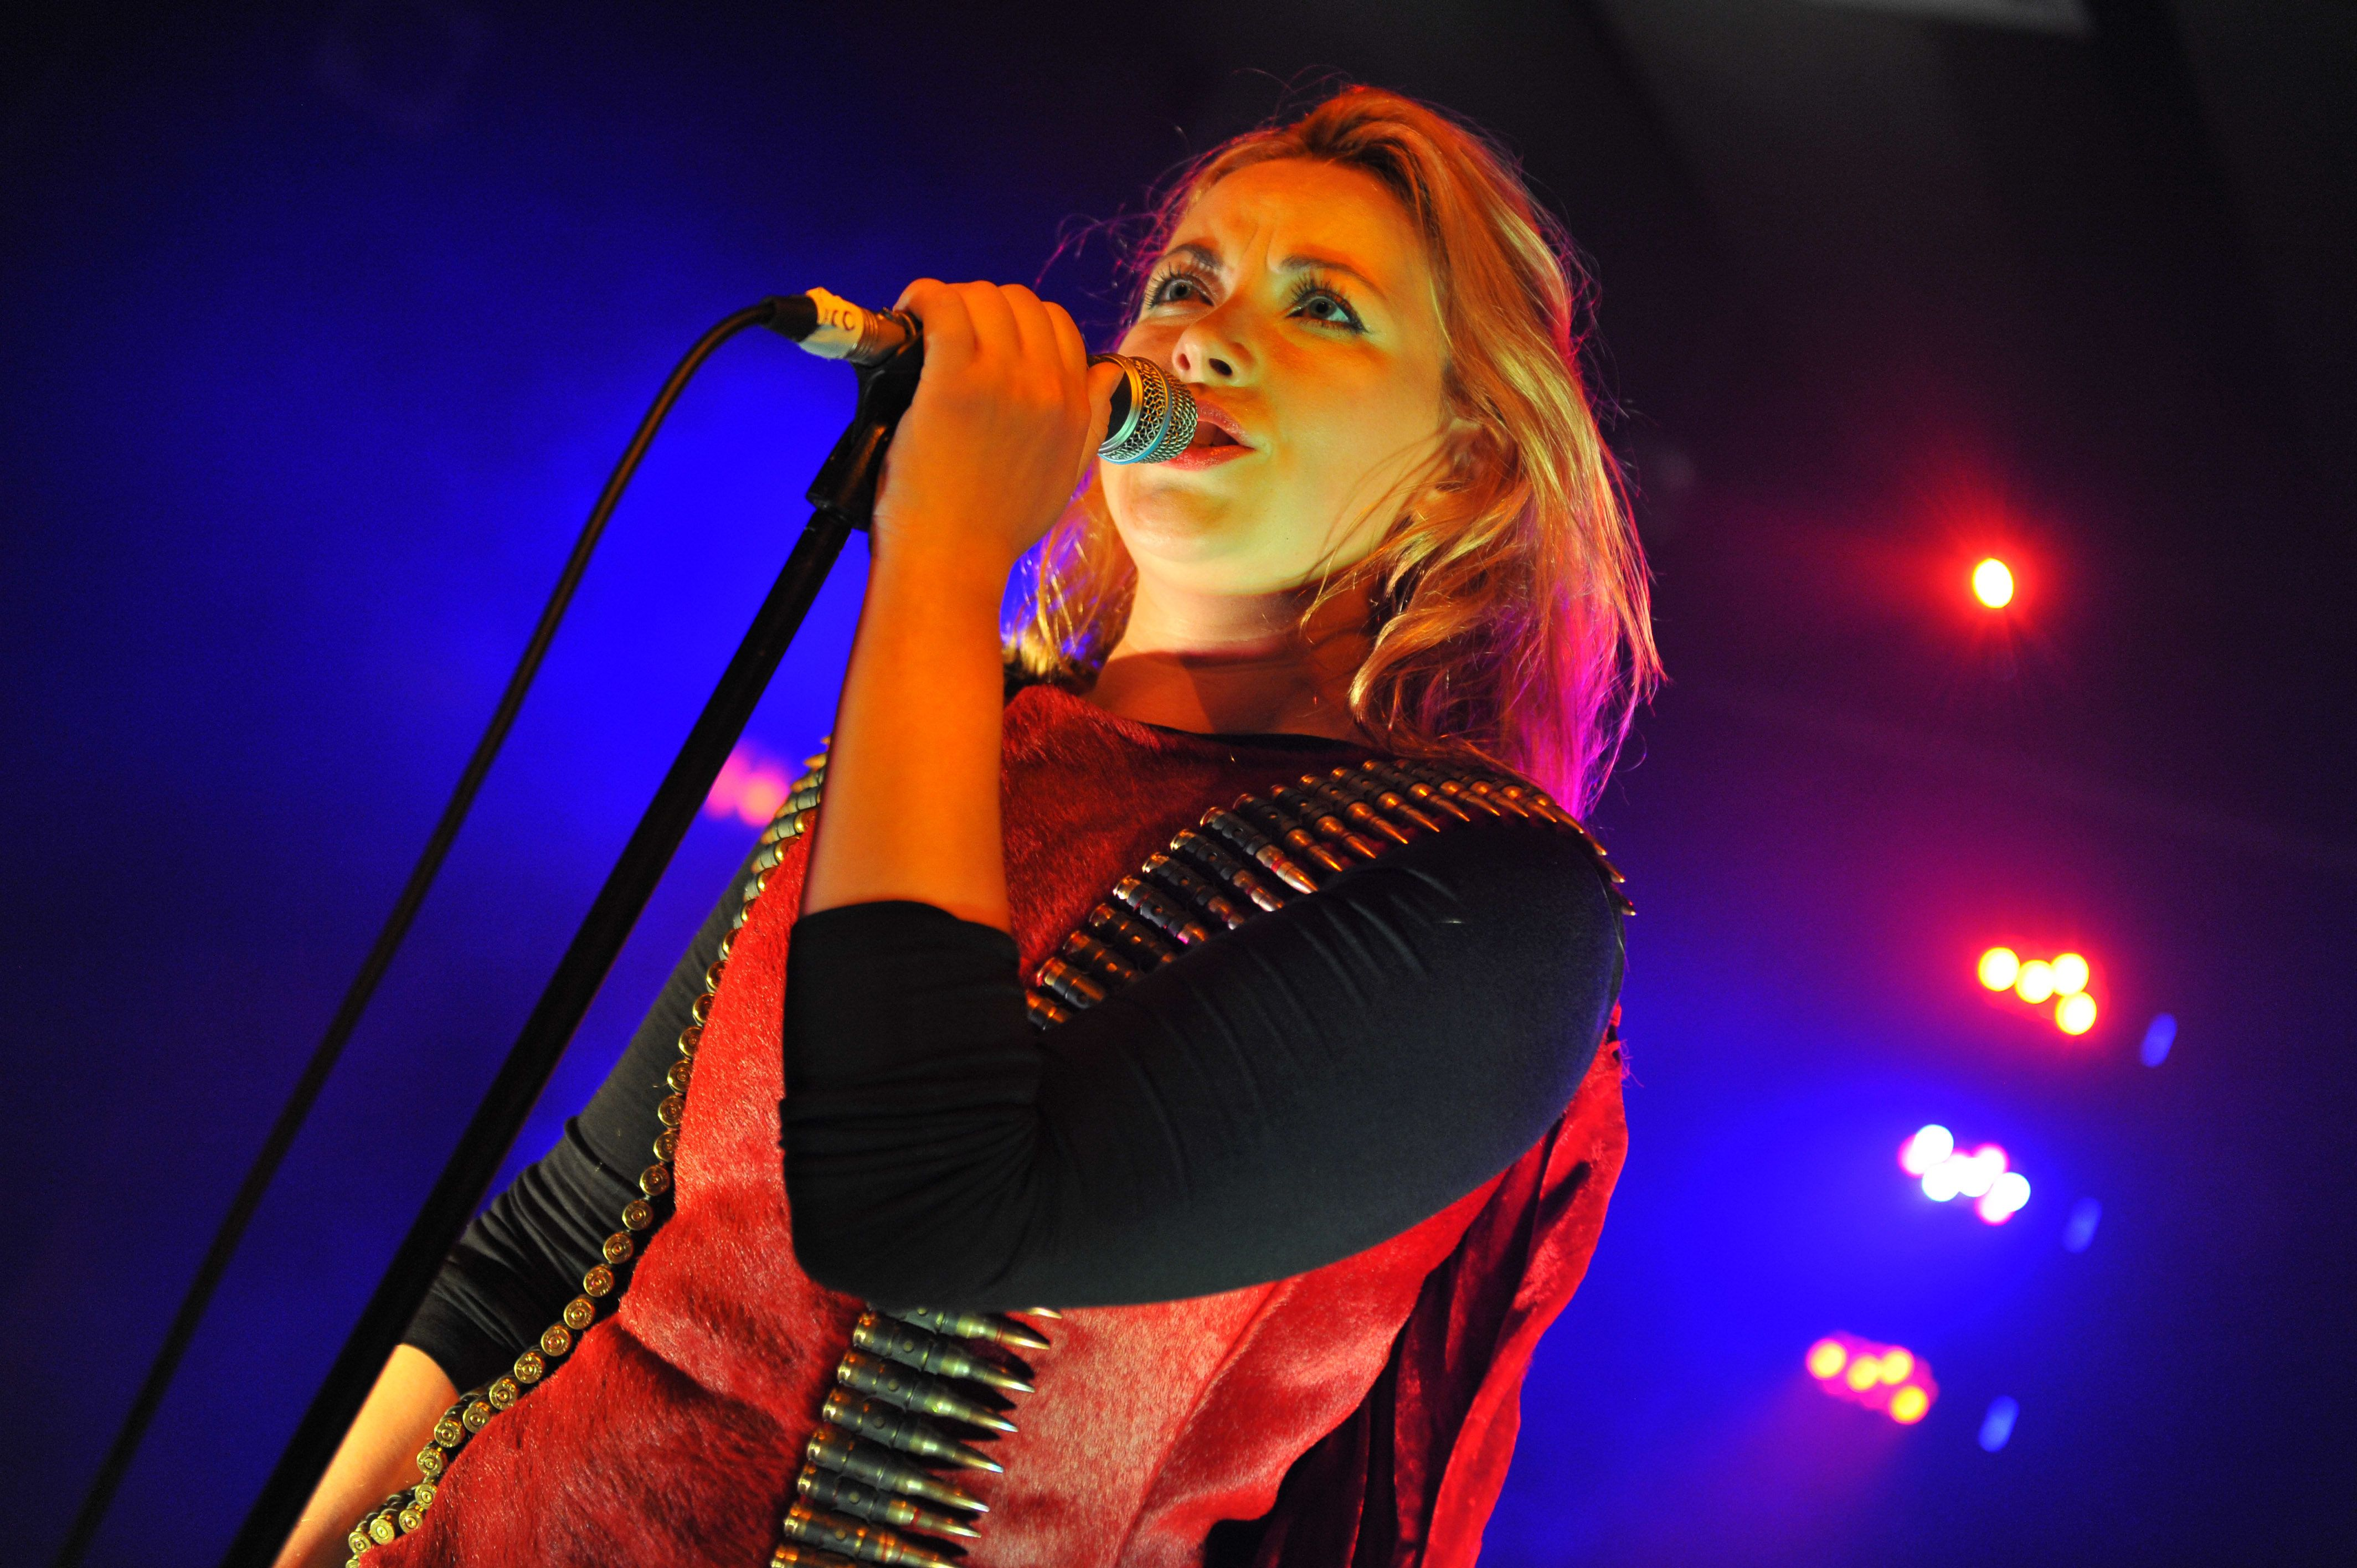 LONDON, UNITED KINGDOM - SEPTEMBER 24: Charlotte Church performs on stage at Scala on September 24, 2013 in London, England. (Photo by C Brandon/Redferns via Getty Images)